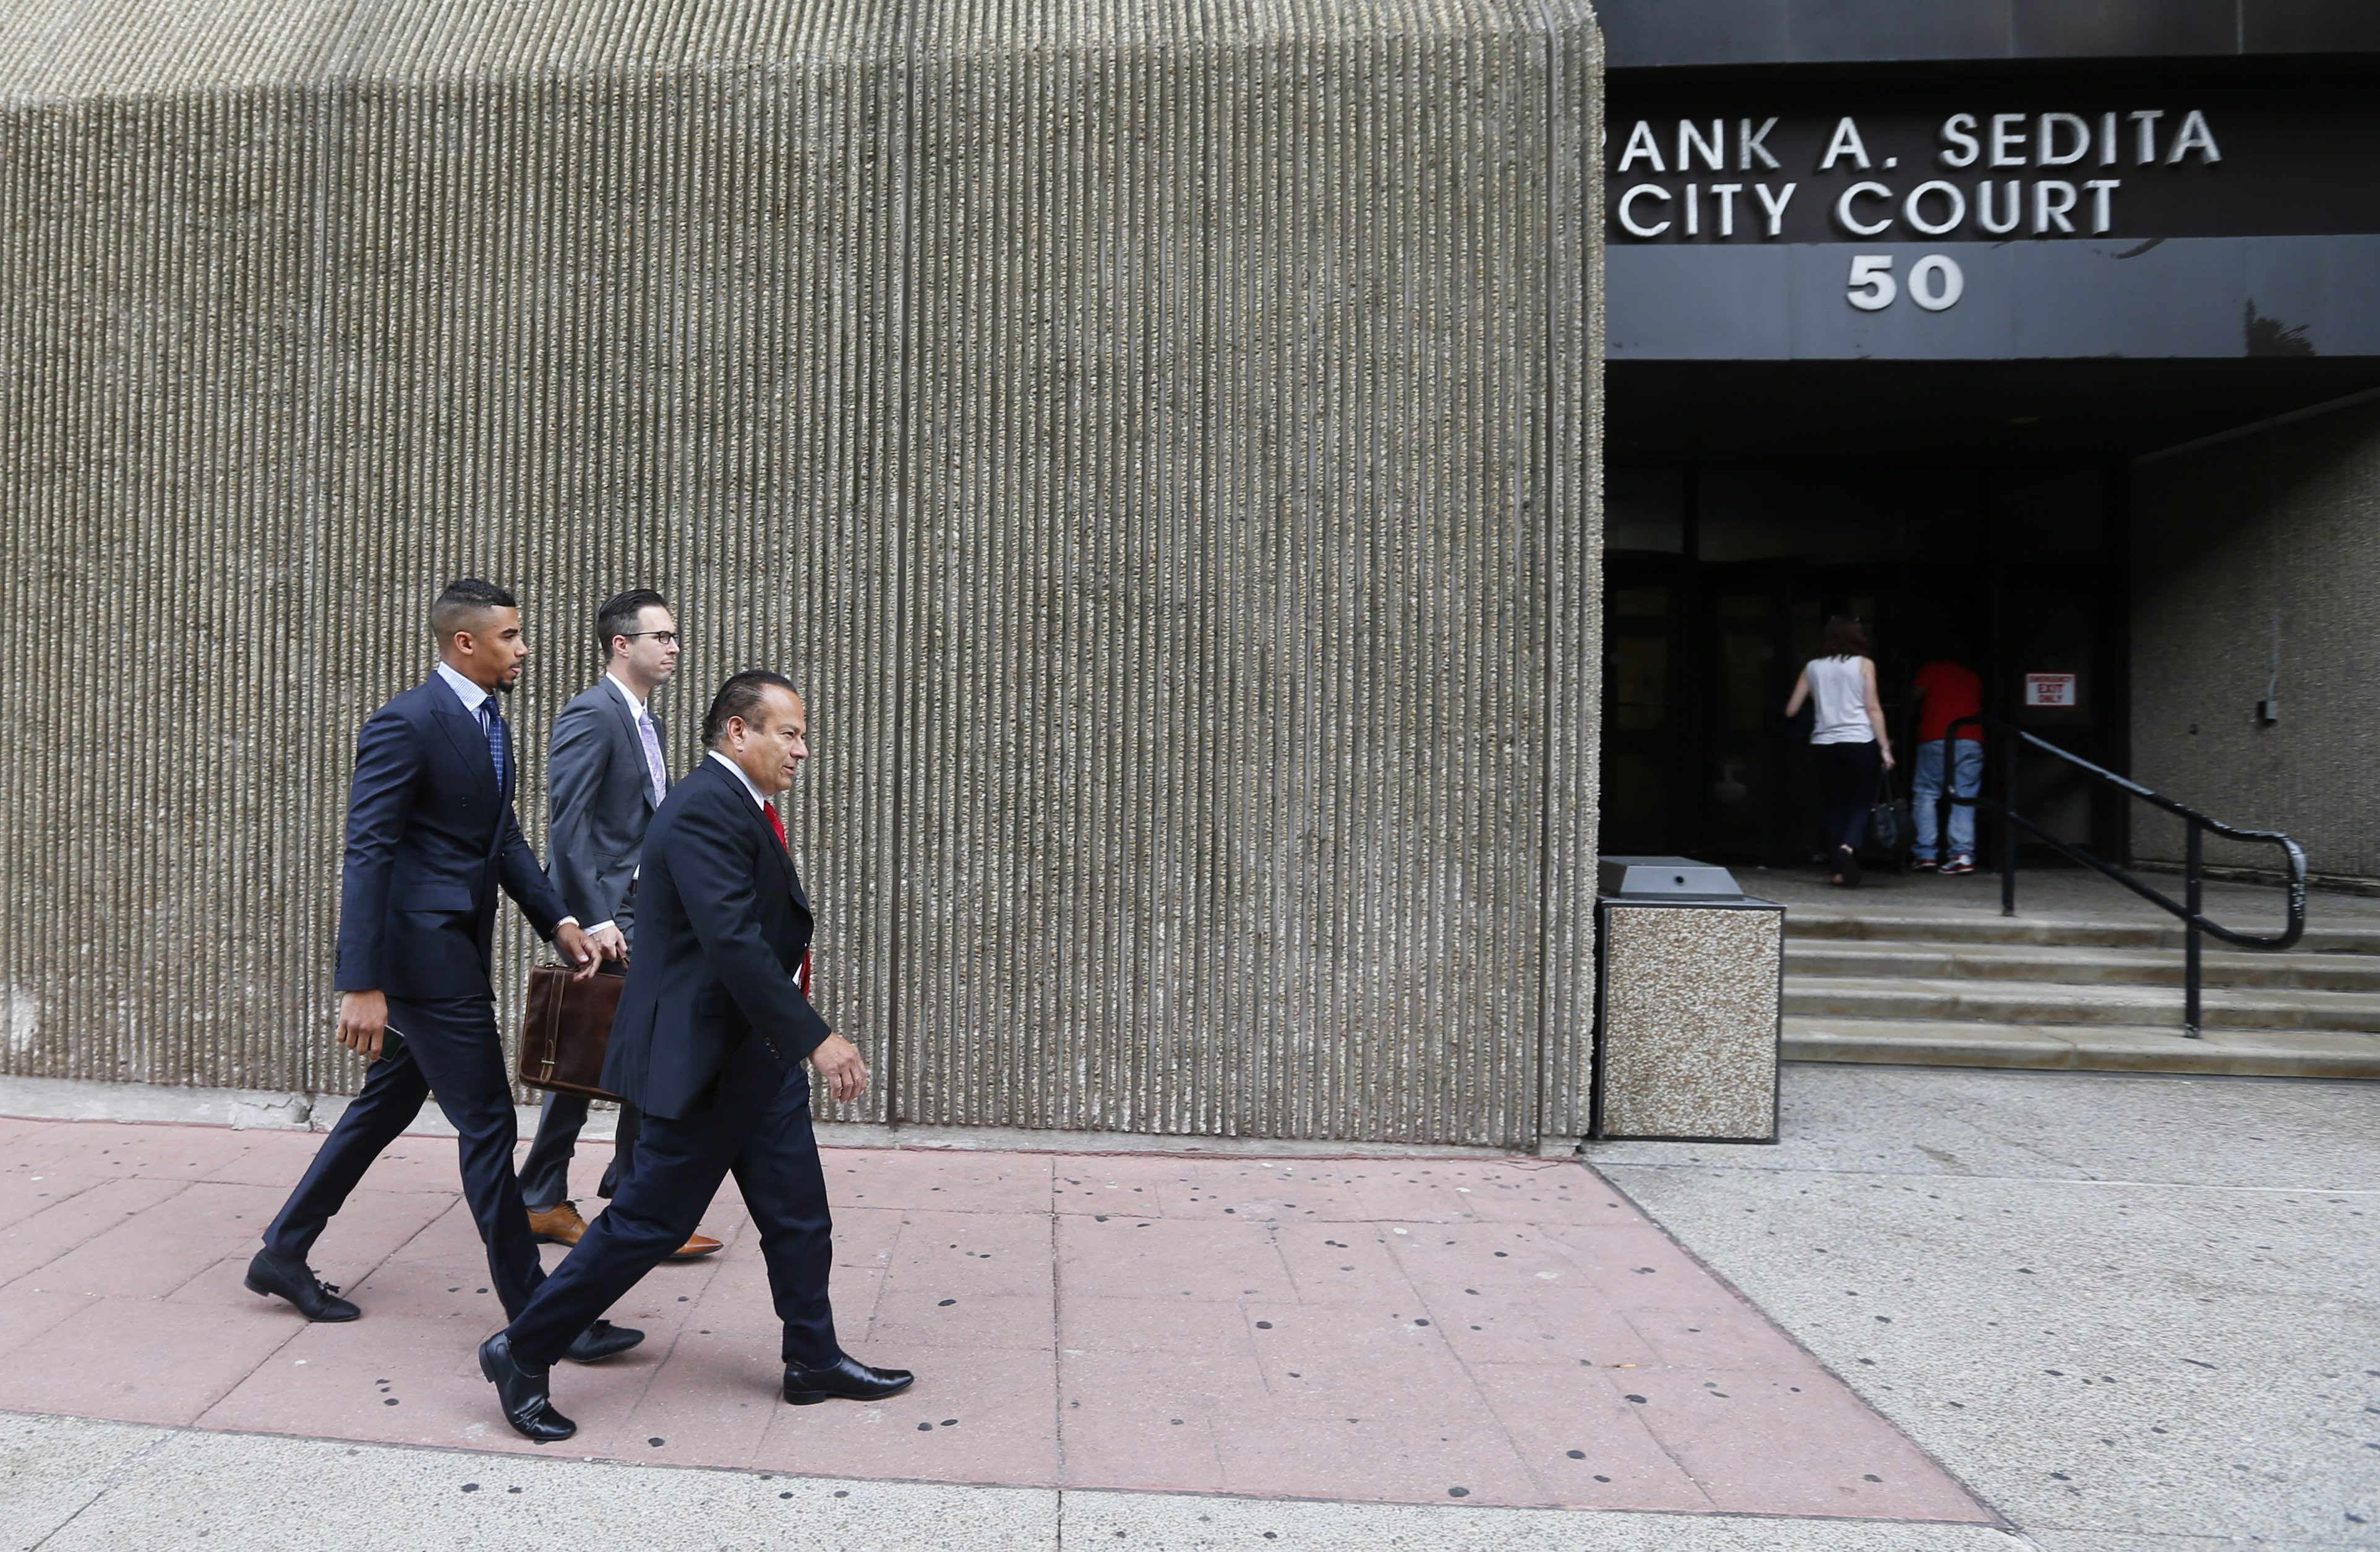 Buffalo Sabres forward Evander Kane enters city court with his attorneys on Aug. 1, 2016.